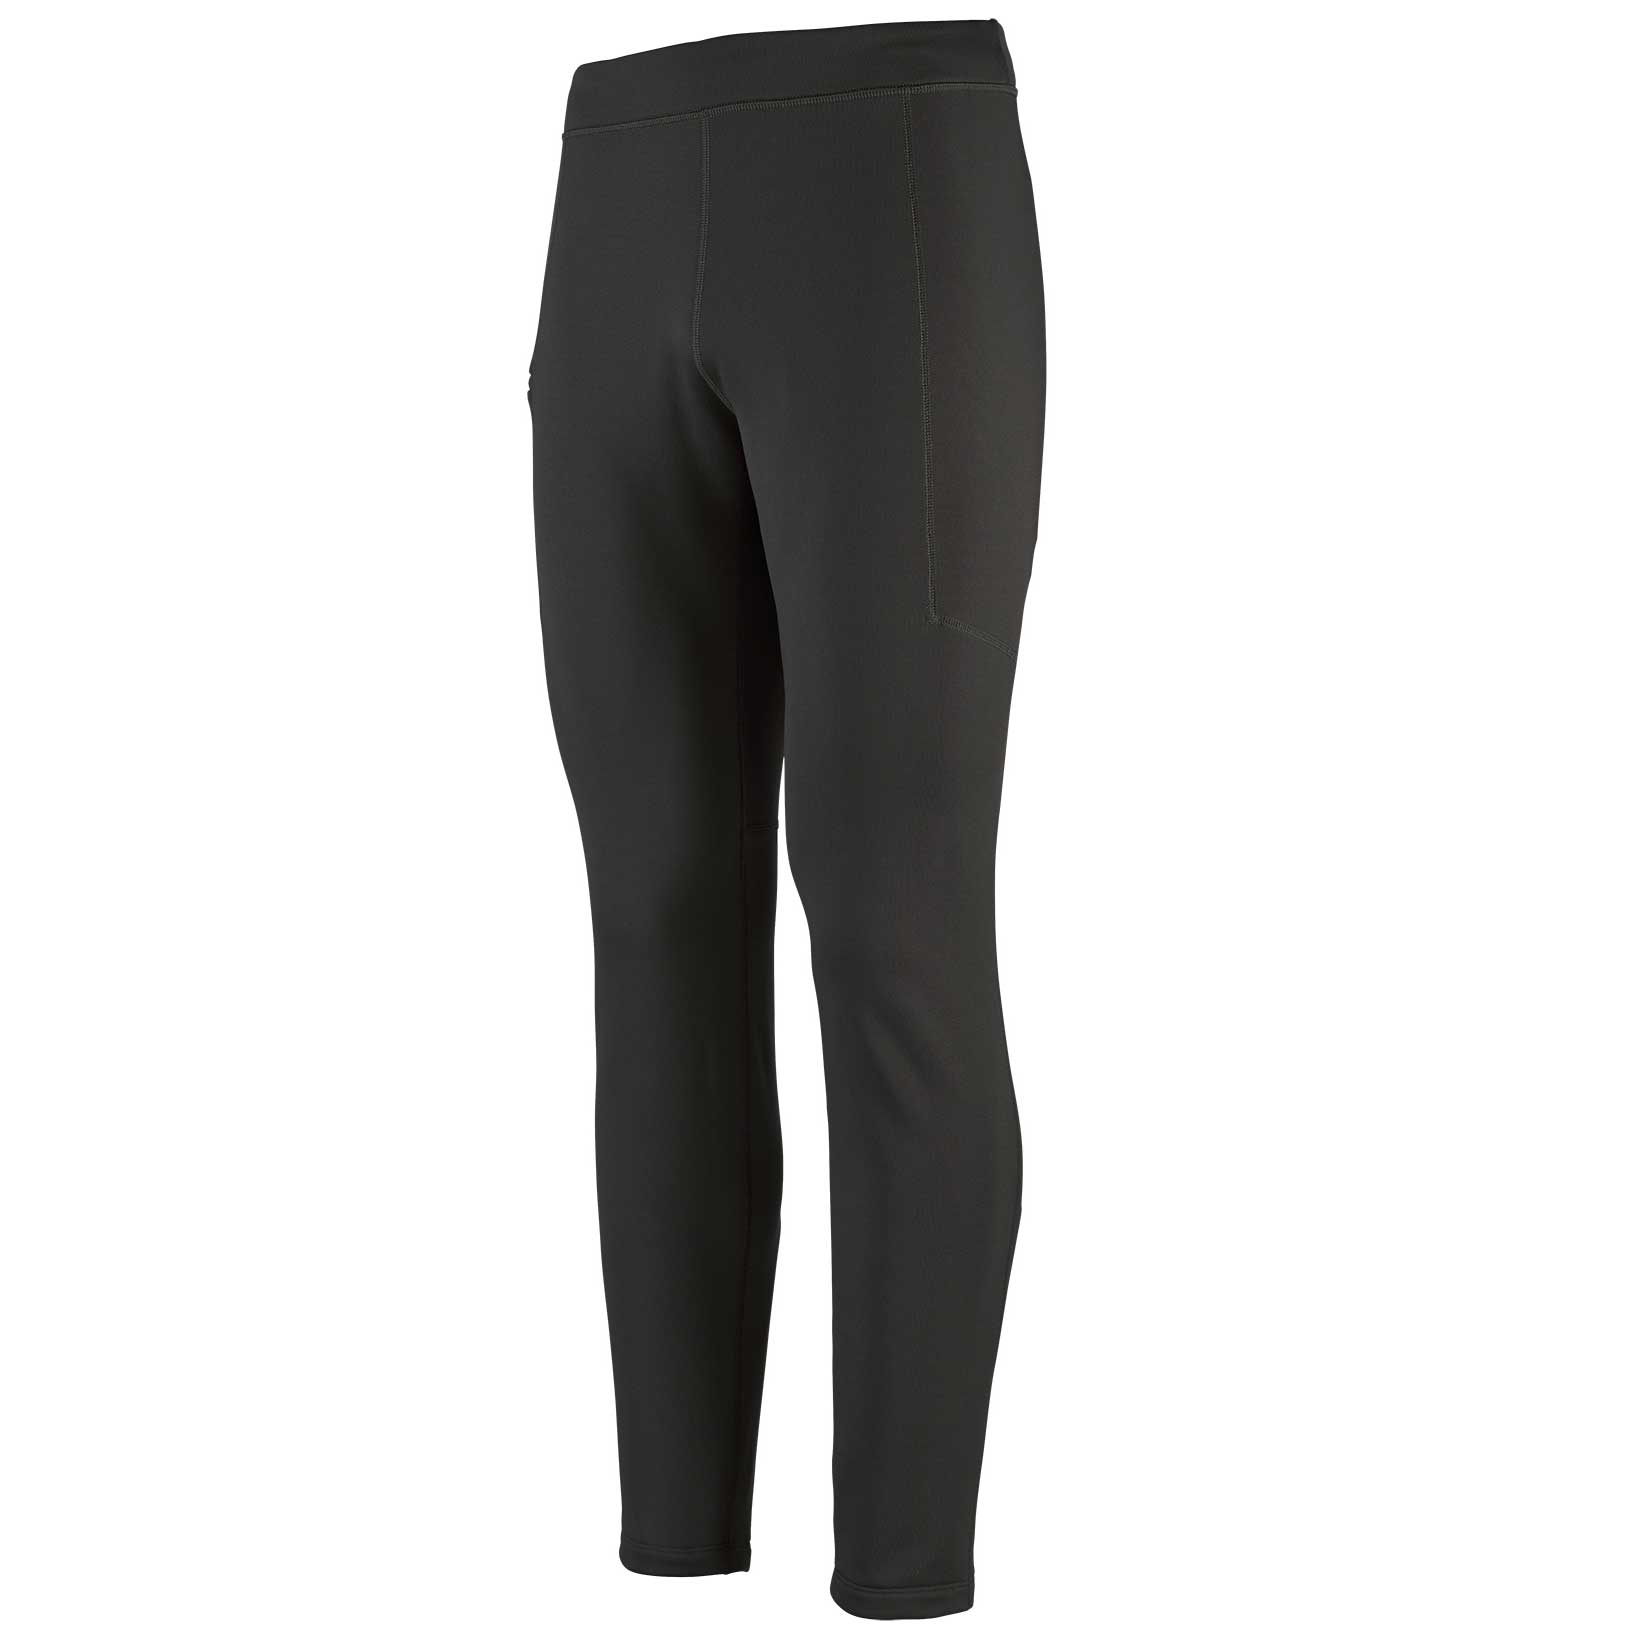 Patagonia men's Crosstrek Bottoms in Black front view